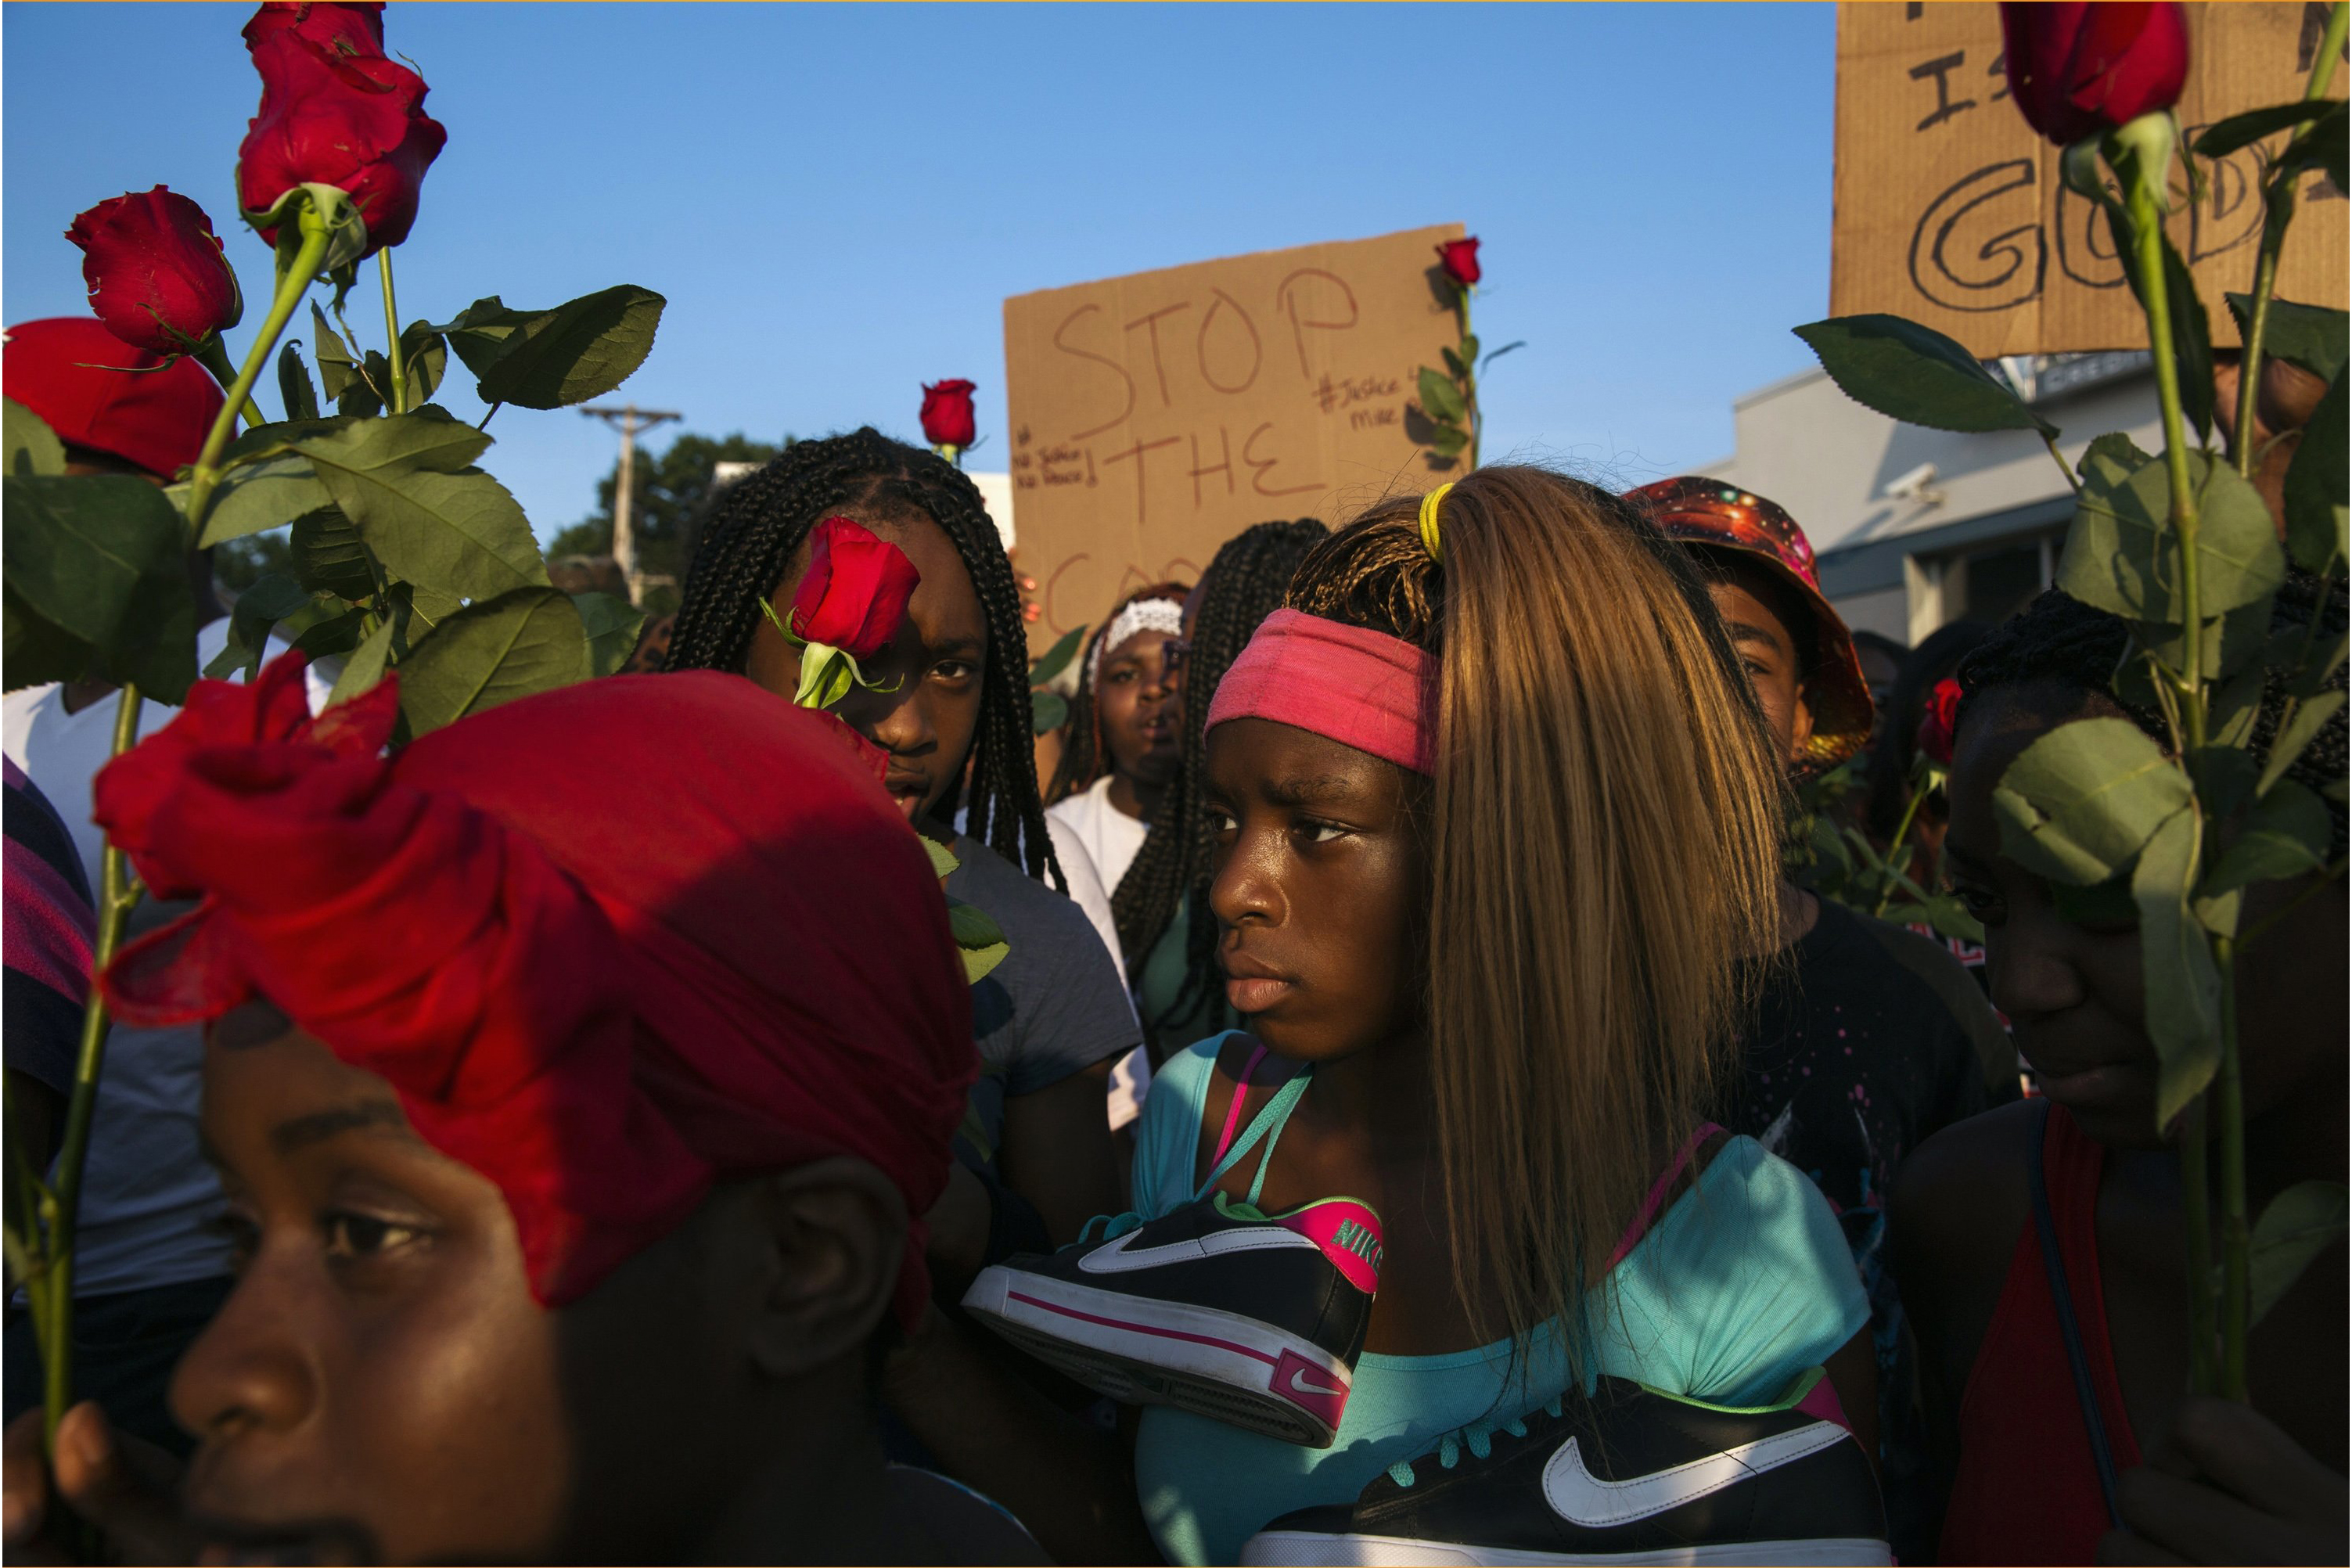 Demonstrators march down West Florissant during a peaceful march in reaction to the shooting of Michael Brown, near Ferguson, Mo. on Aug. 18, 2014.